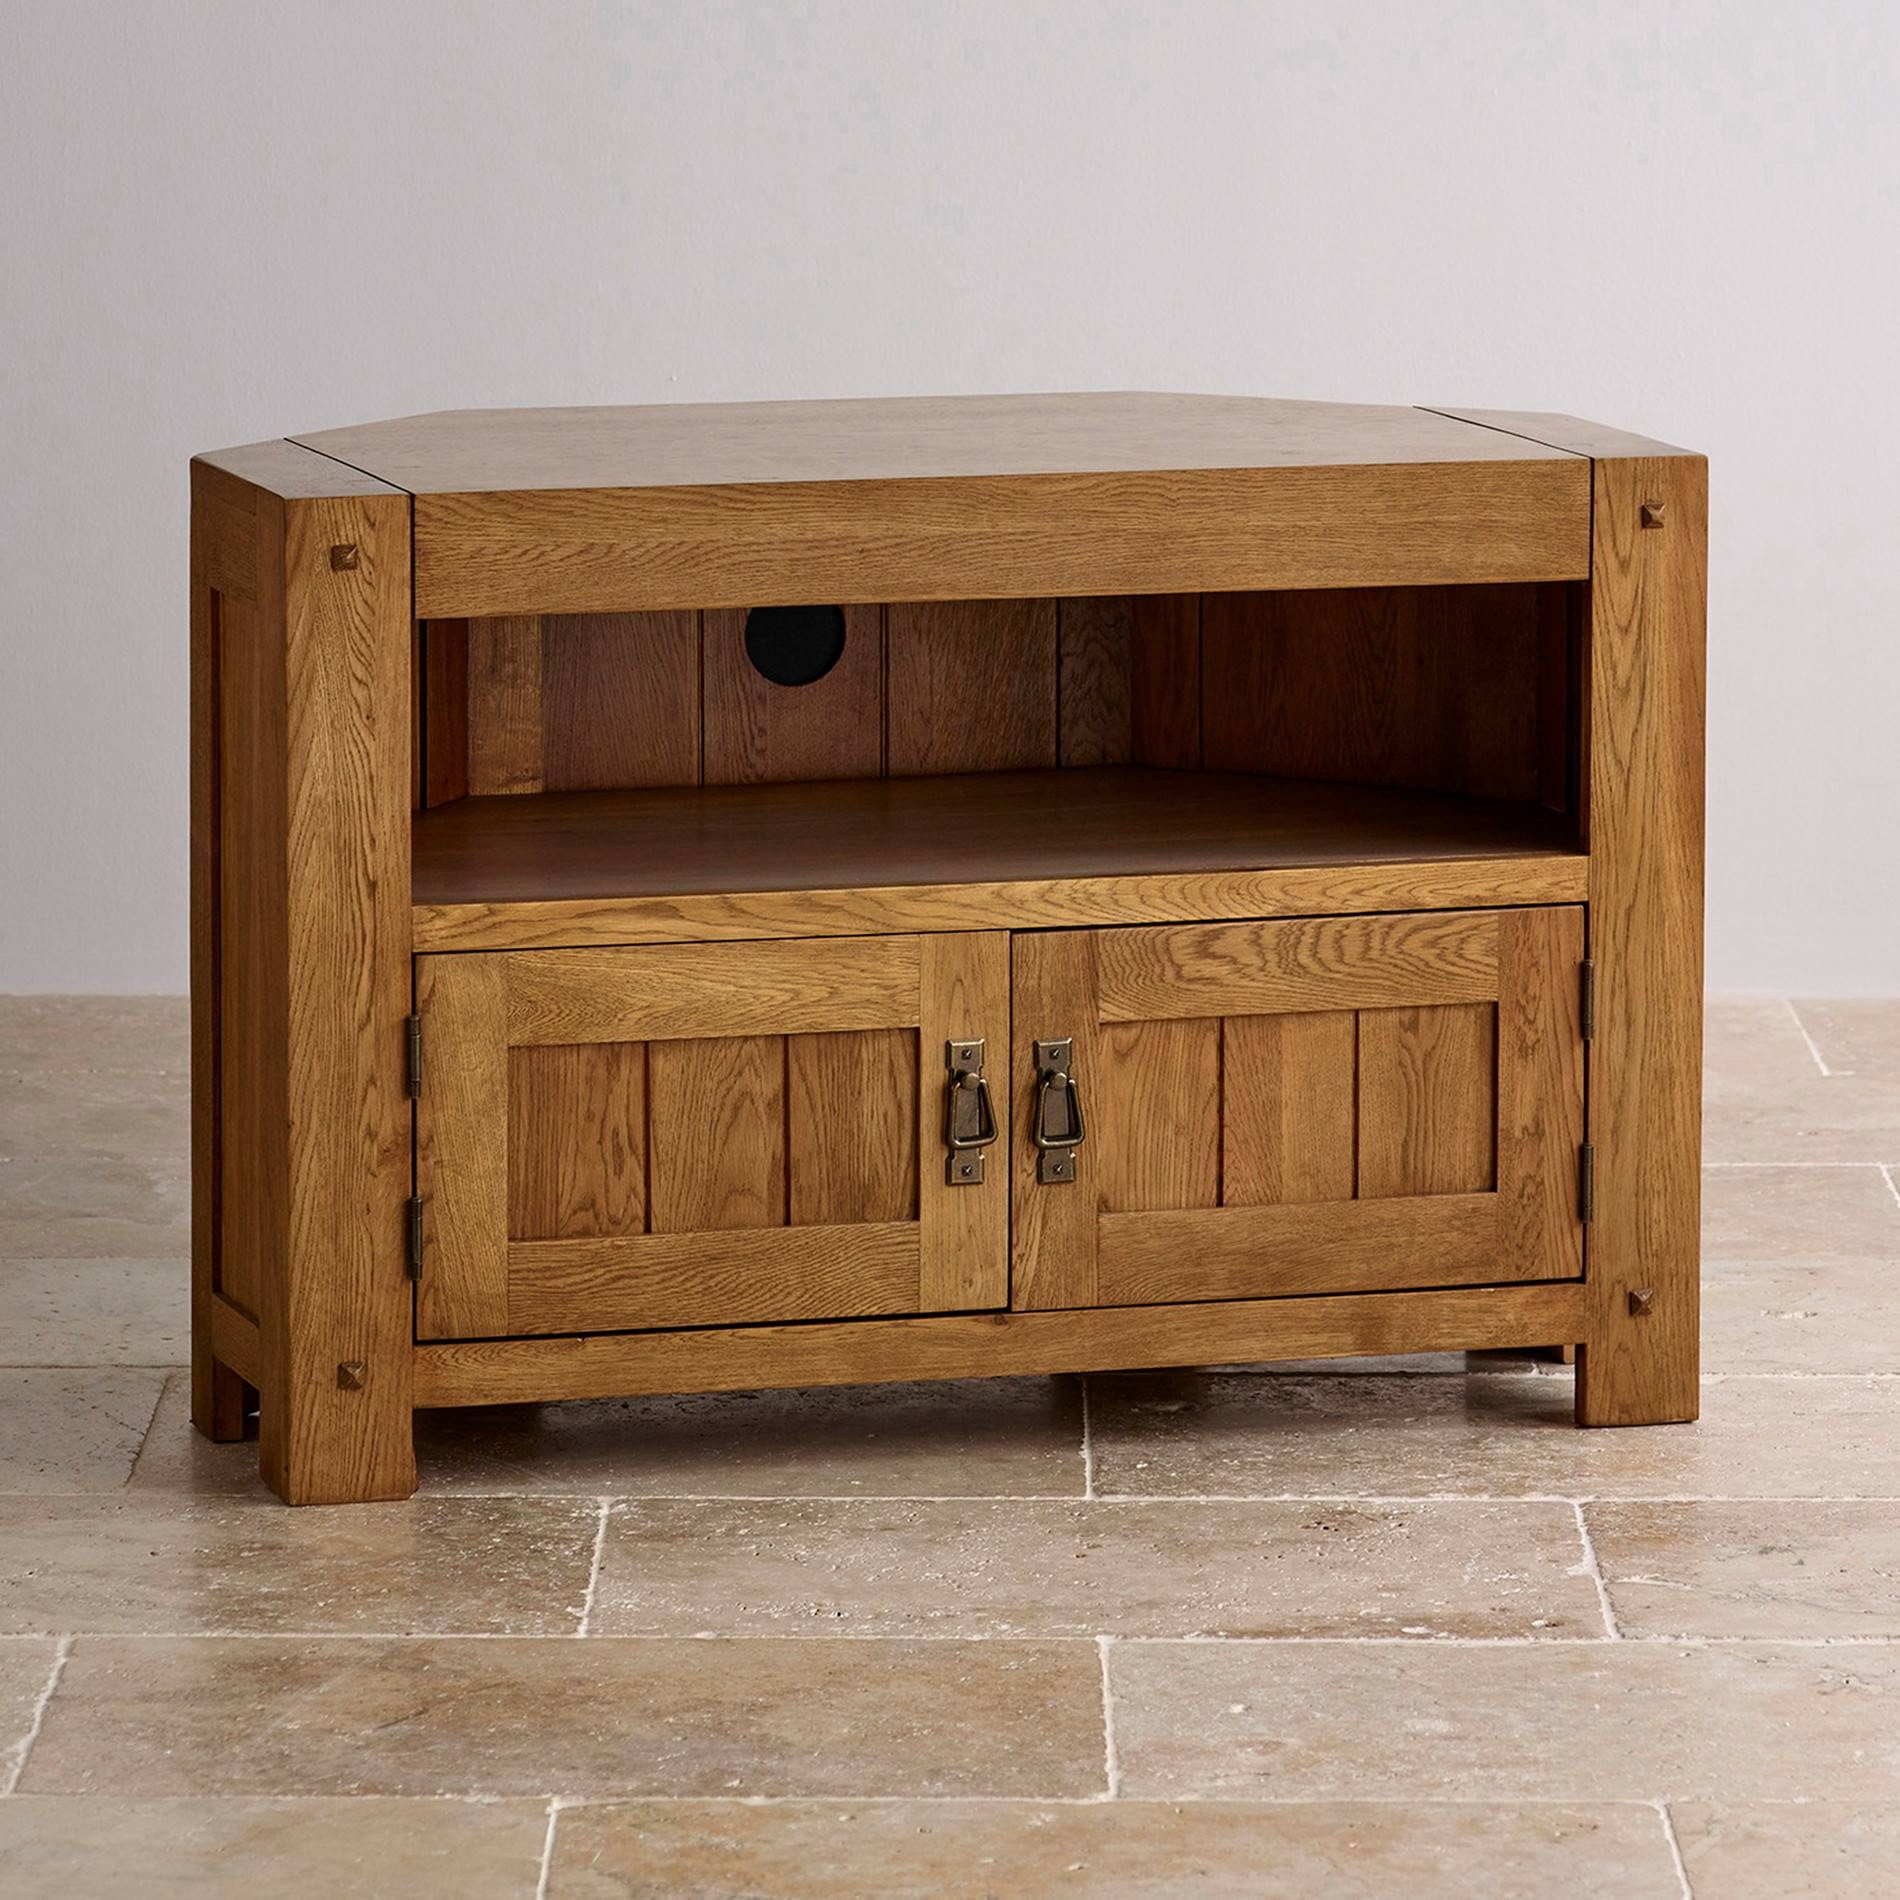 Quercus Corner Tv Cabinet In Rustic Oak | Oak Furniture Land inside Solid Oak Tv Cabinets (Image 10 of 15)